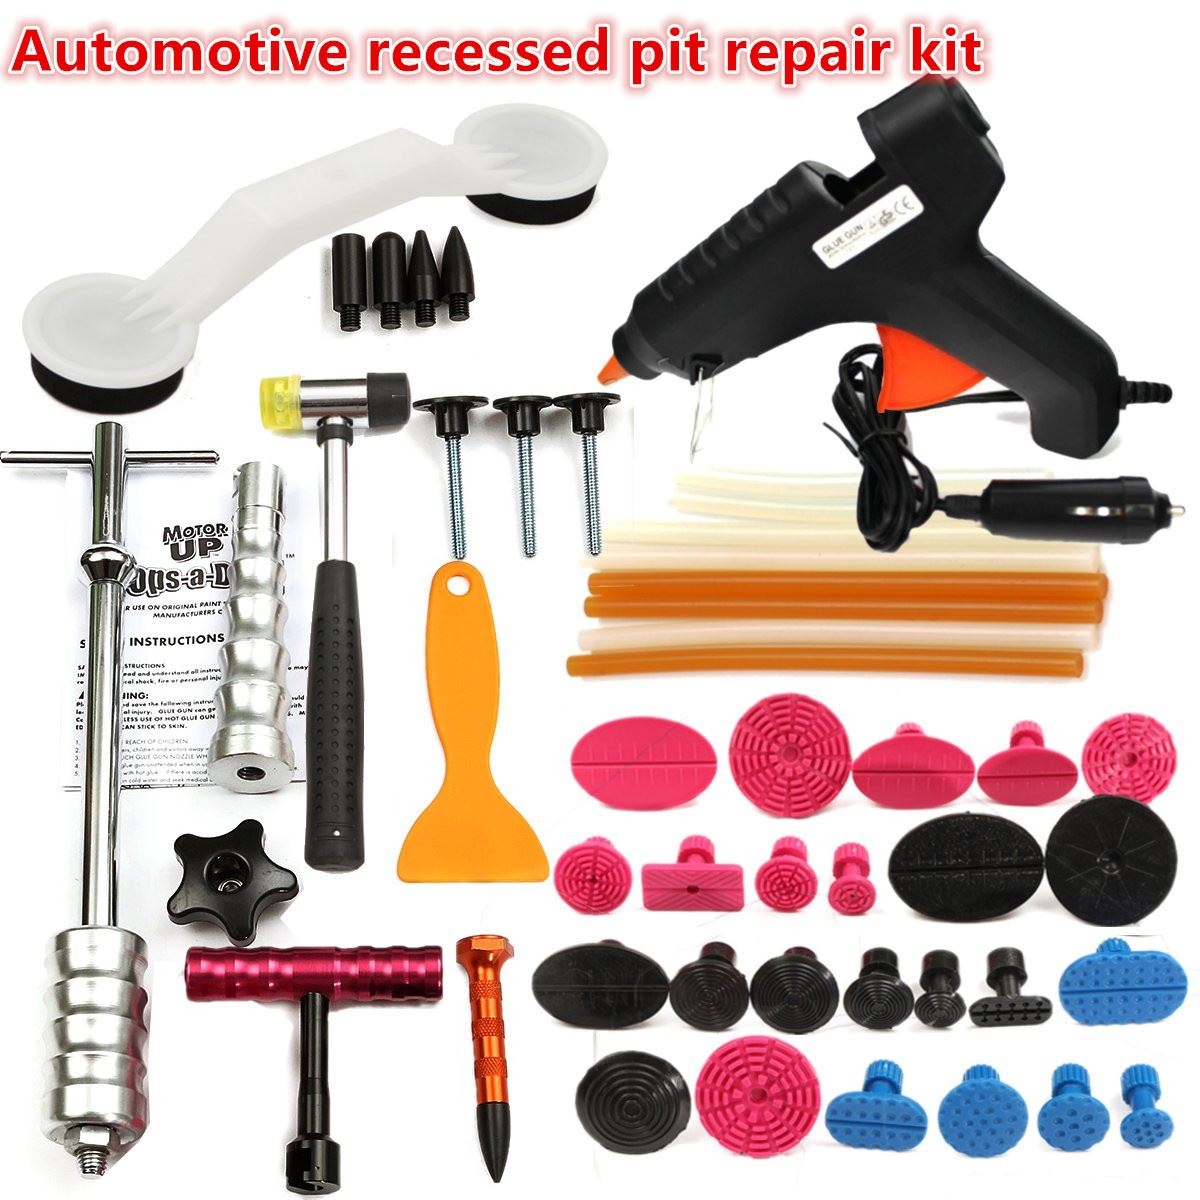 New PDR Tools Car Repair Tool Set Dent Removal Slide Hammer Puller Lifter Kit Paintless Dent Repair Tabs with Glue-Gun pdr hail repair kit with 1 4kg pdr slide hammer hail glue puller pdr 206